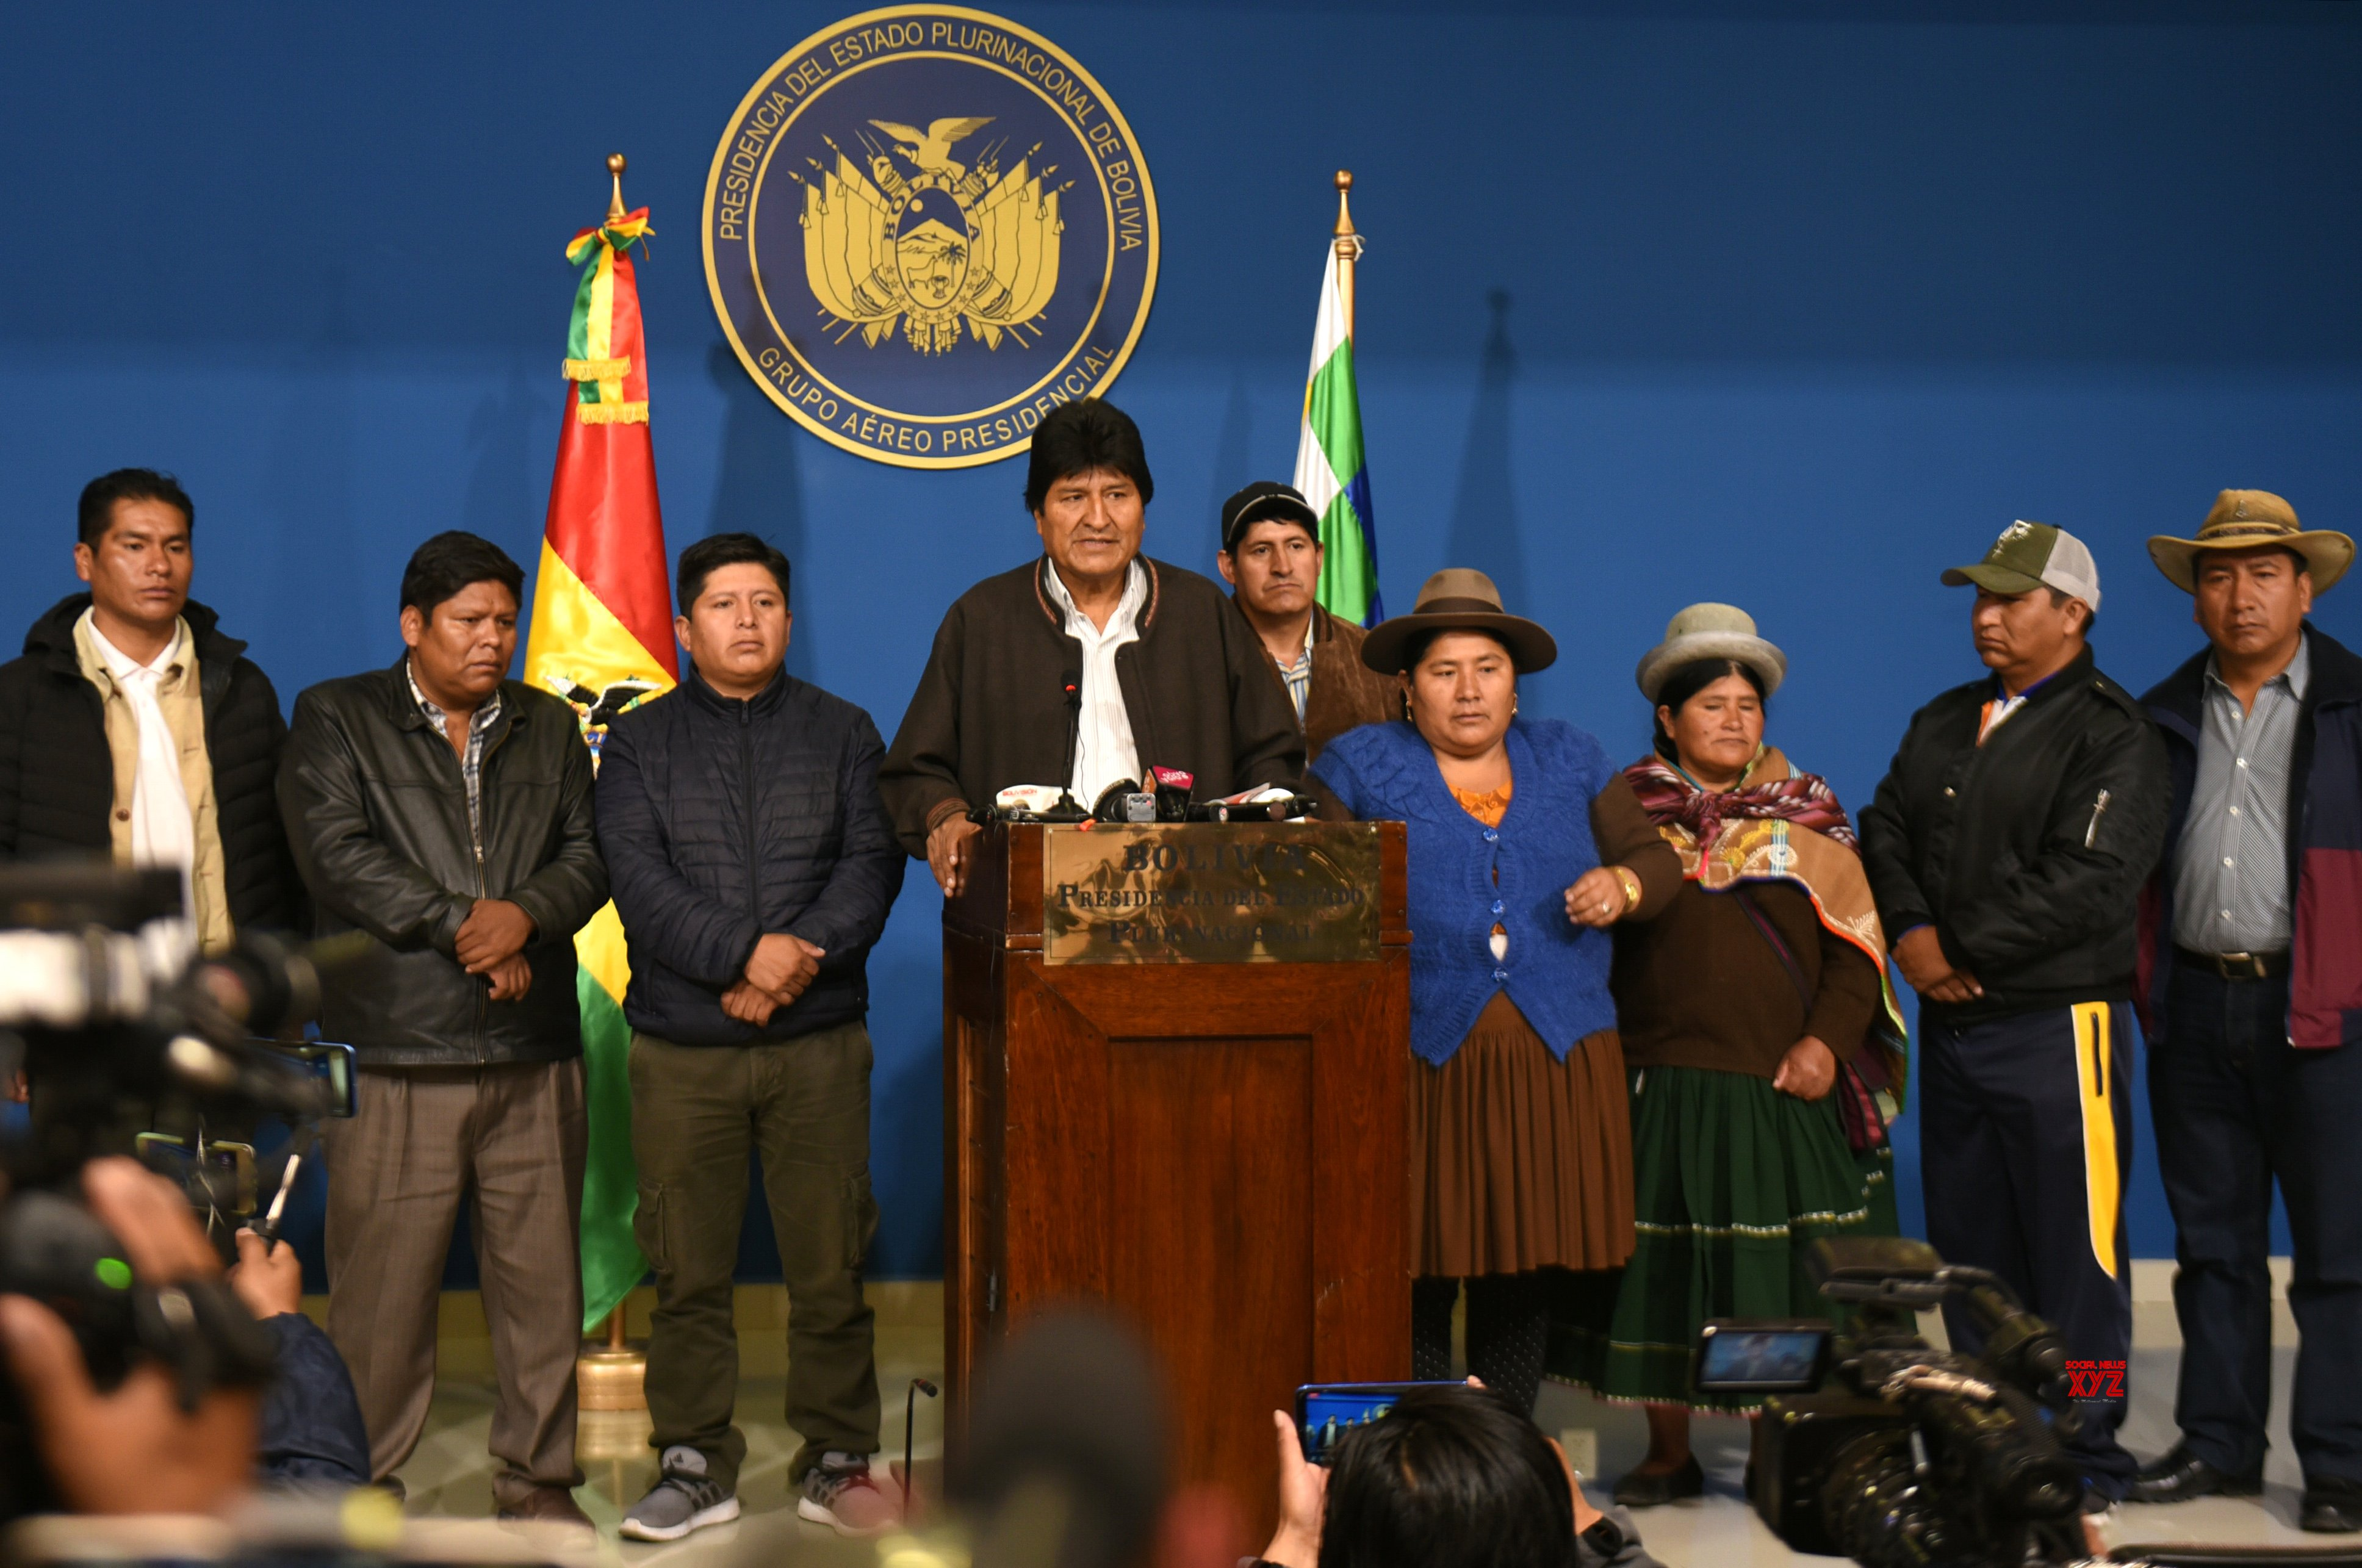 213,600 citizen observers to monitor Bolivia elections